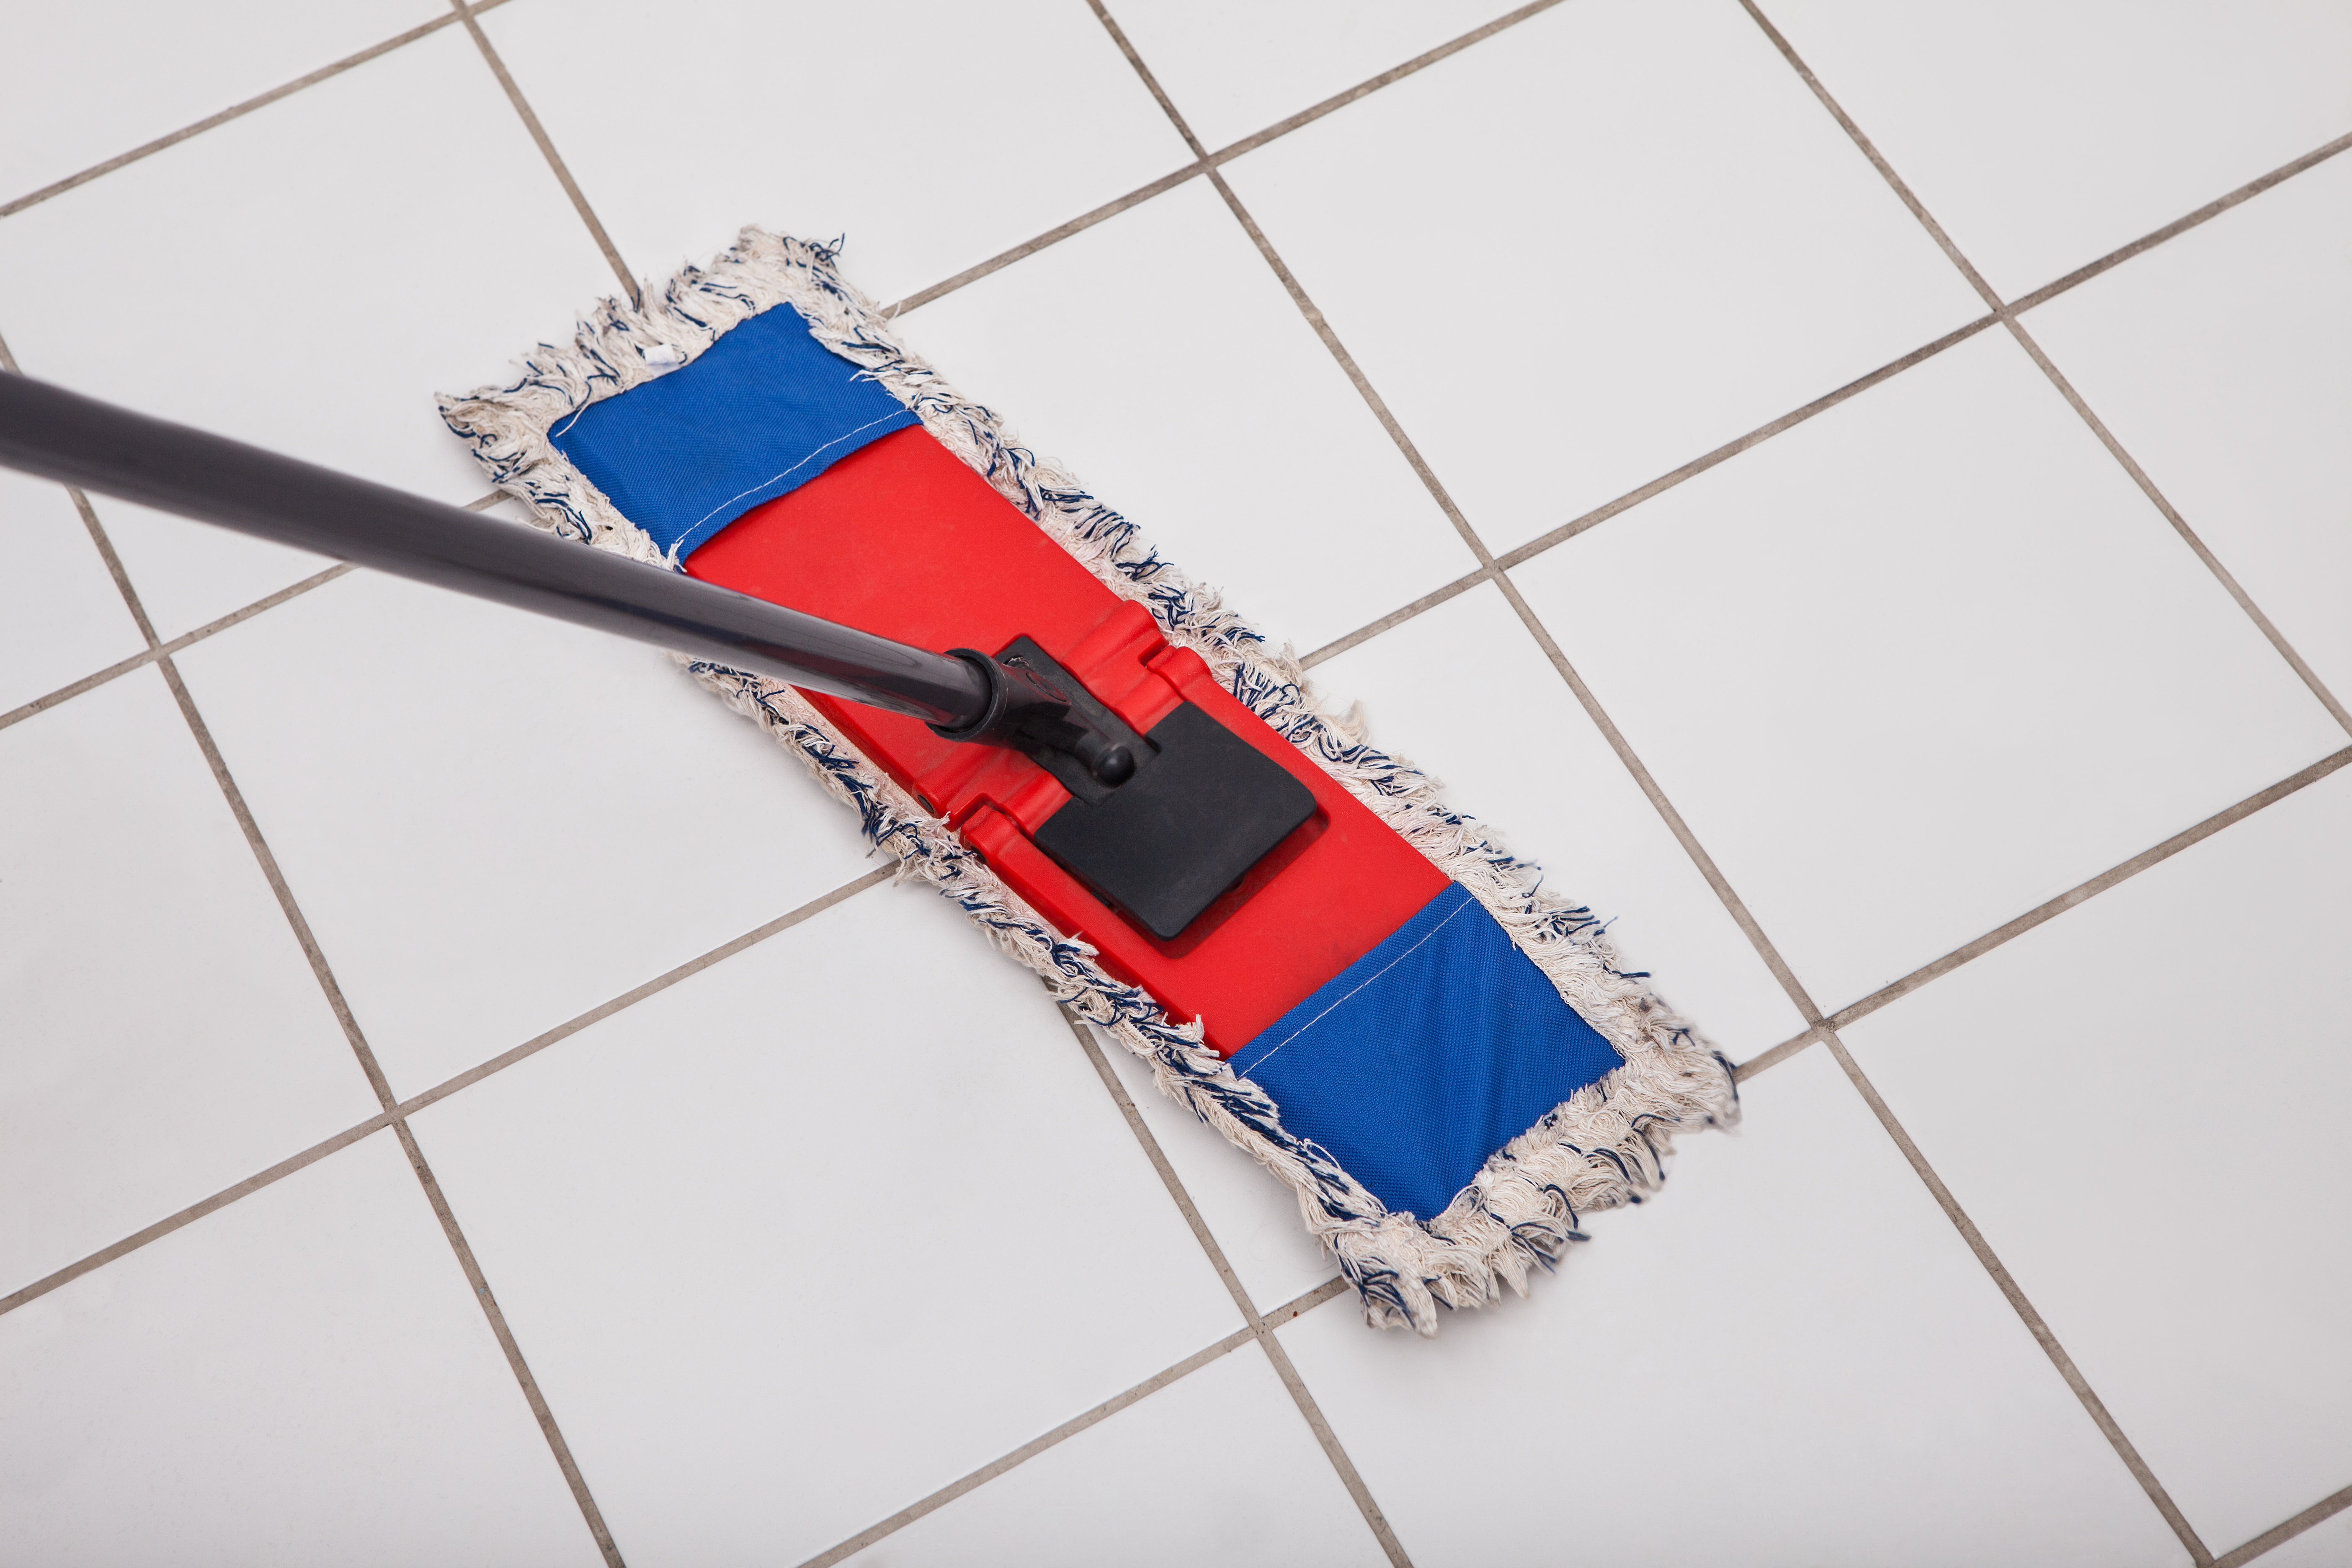 How To Remove Sharpie From Countertop How To Remove 8 Common Stains From Porcelain Tile